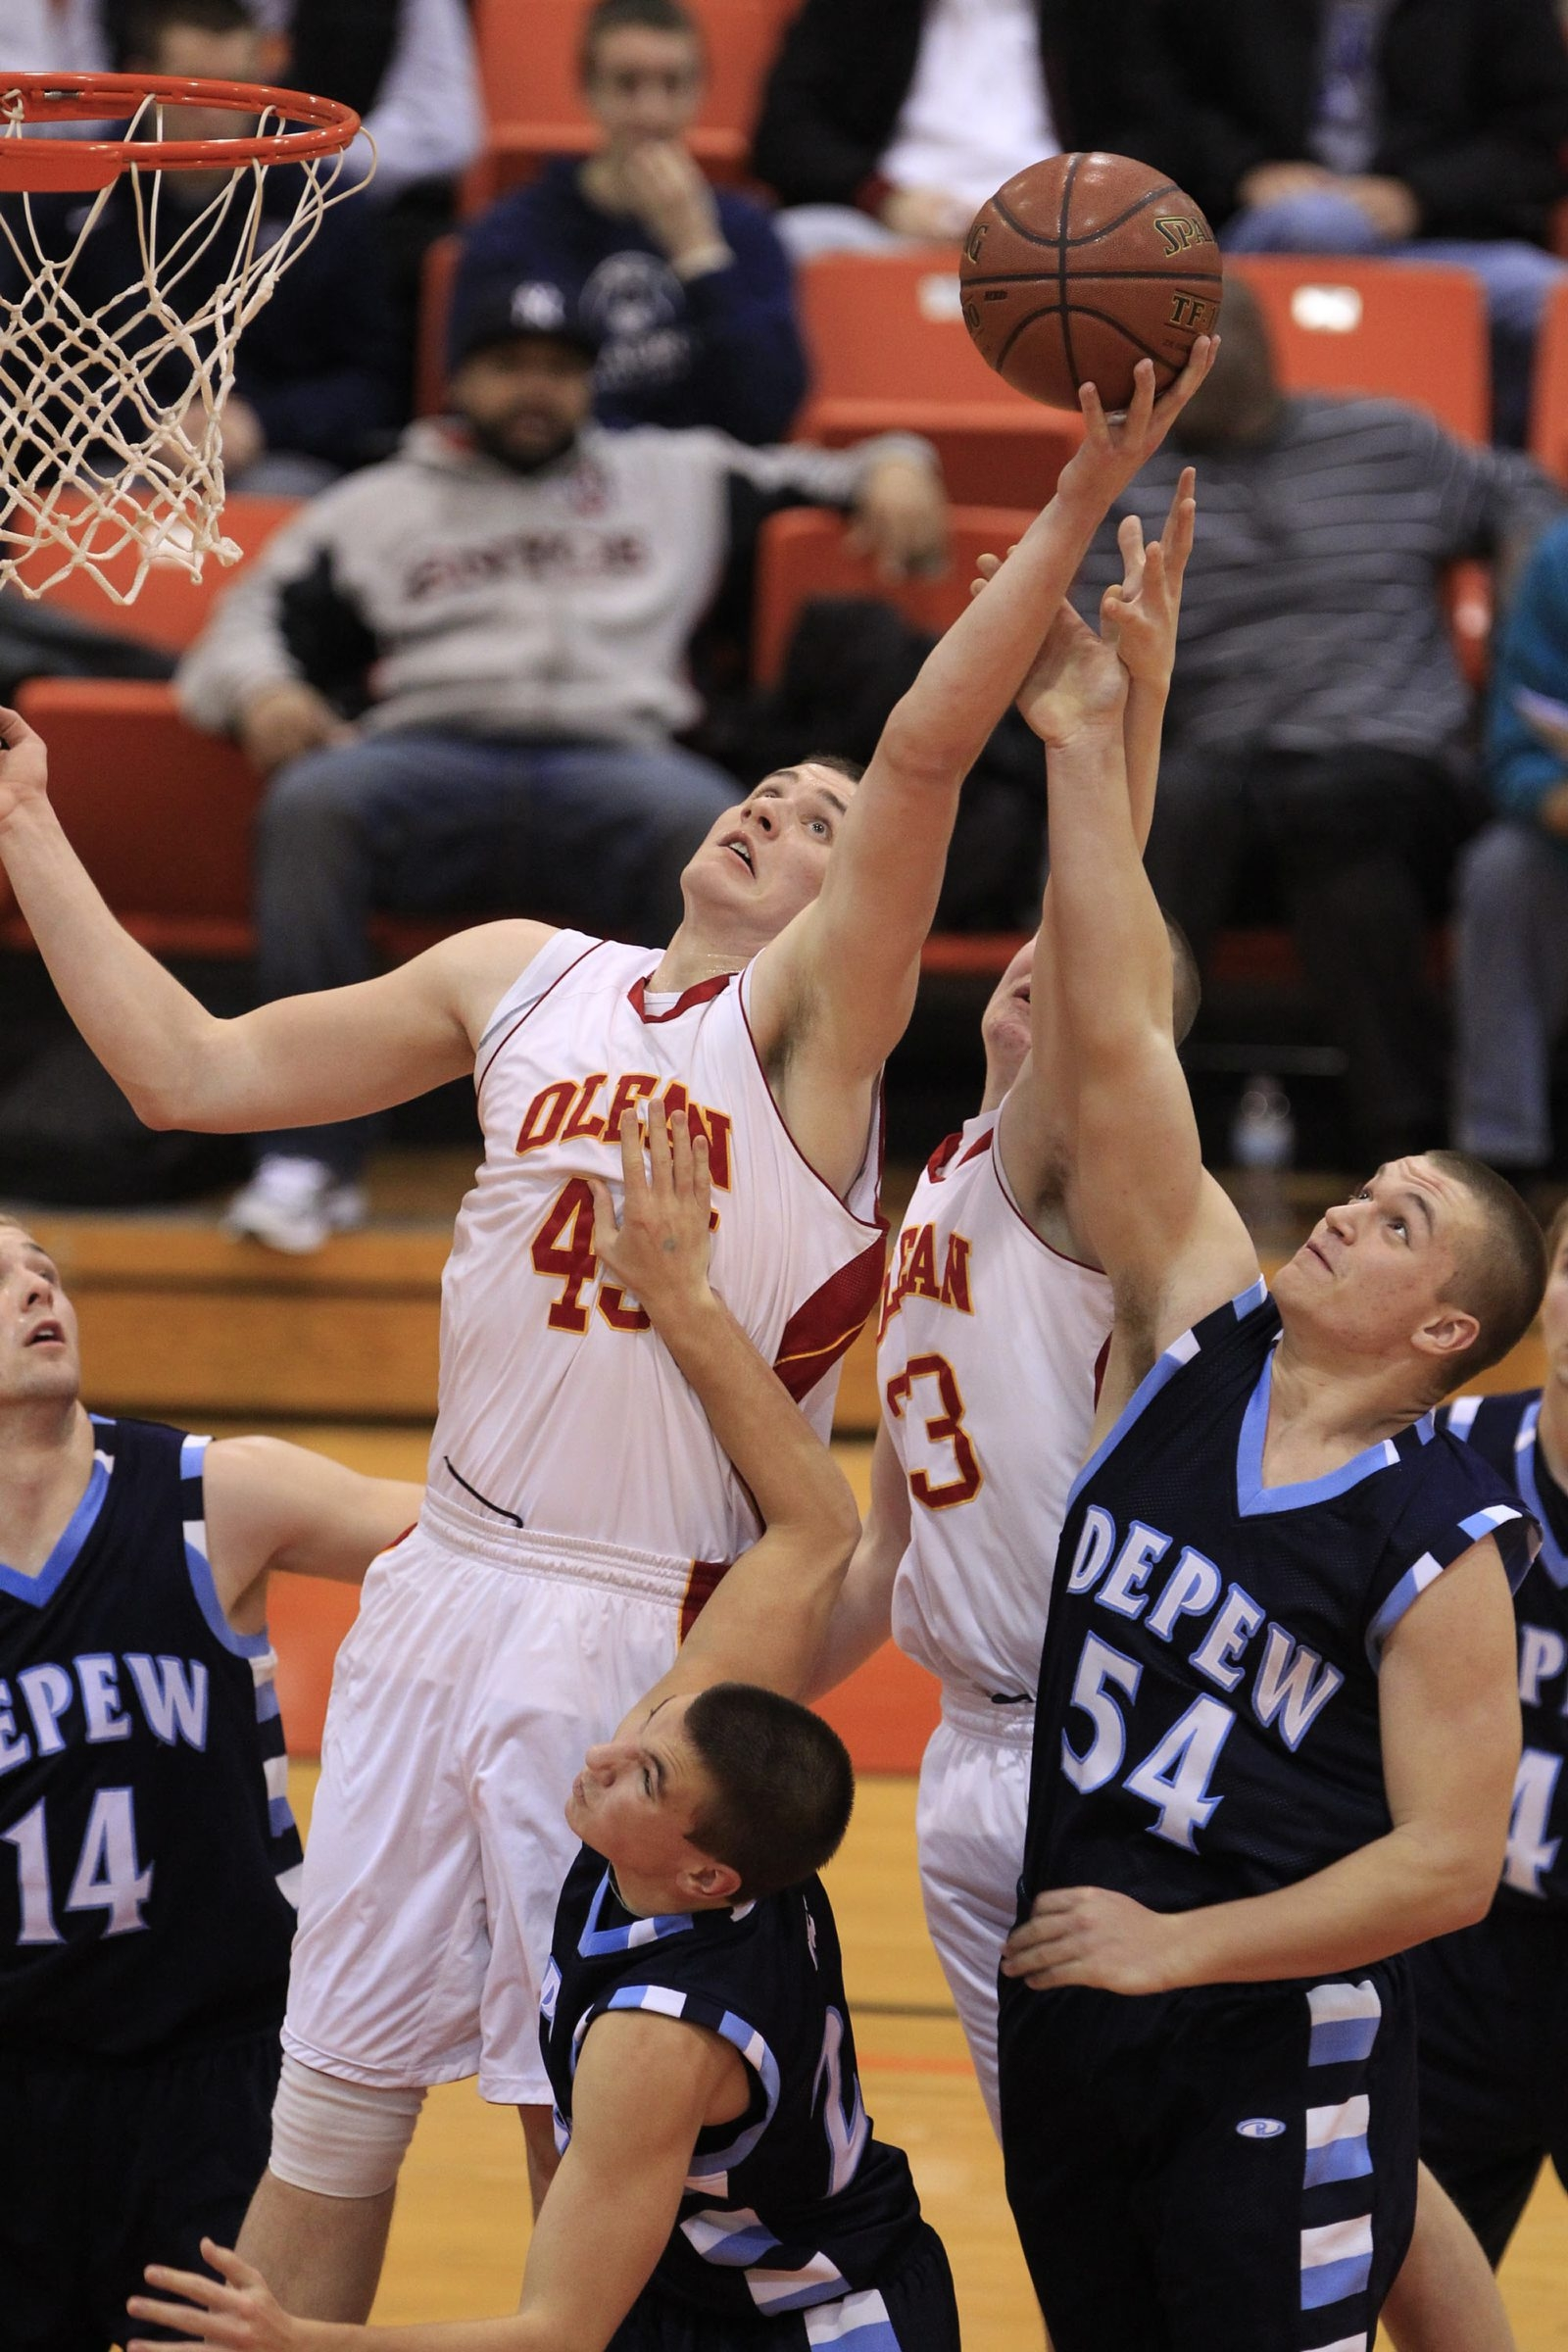 Sam Eckstrom (45) and Chucky Martin are two key players for Olean, the three-time reigning Section VI champion.